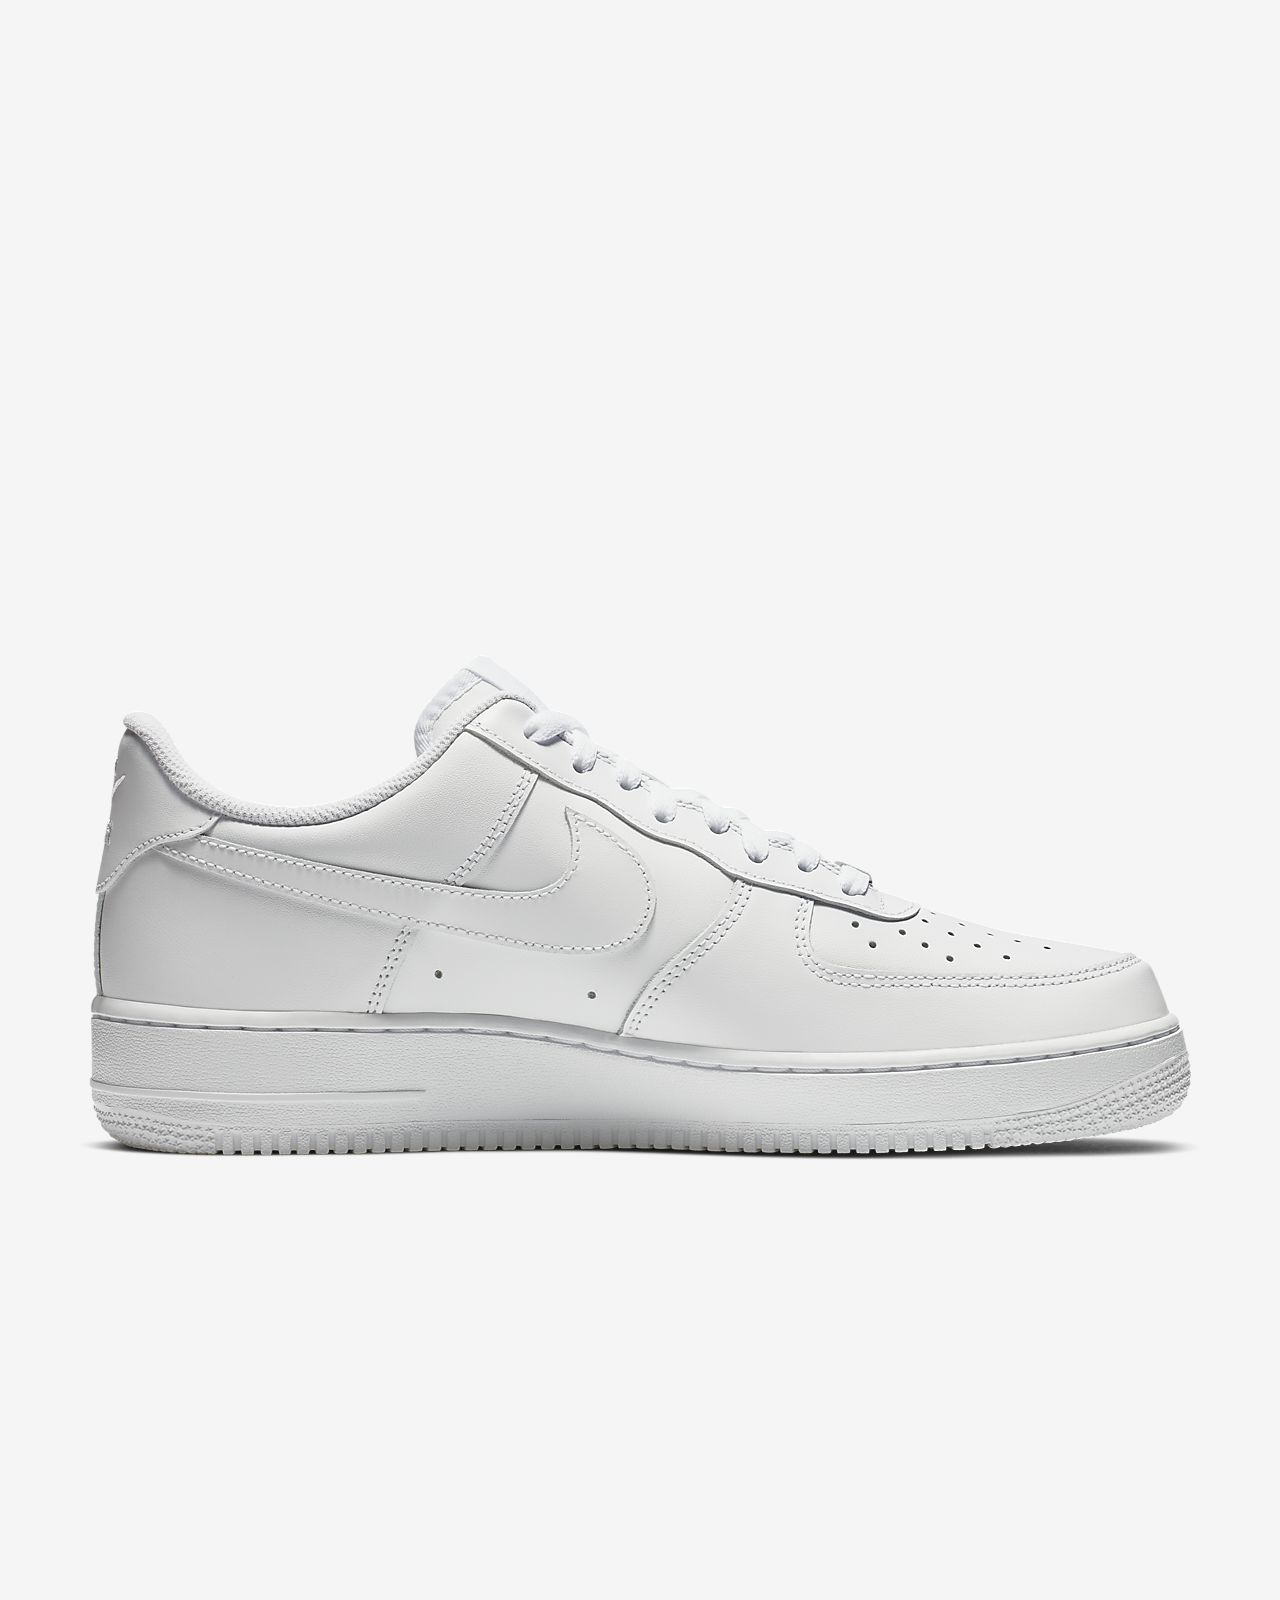 men's air force 1 shoes nz